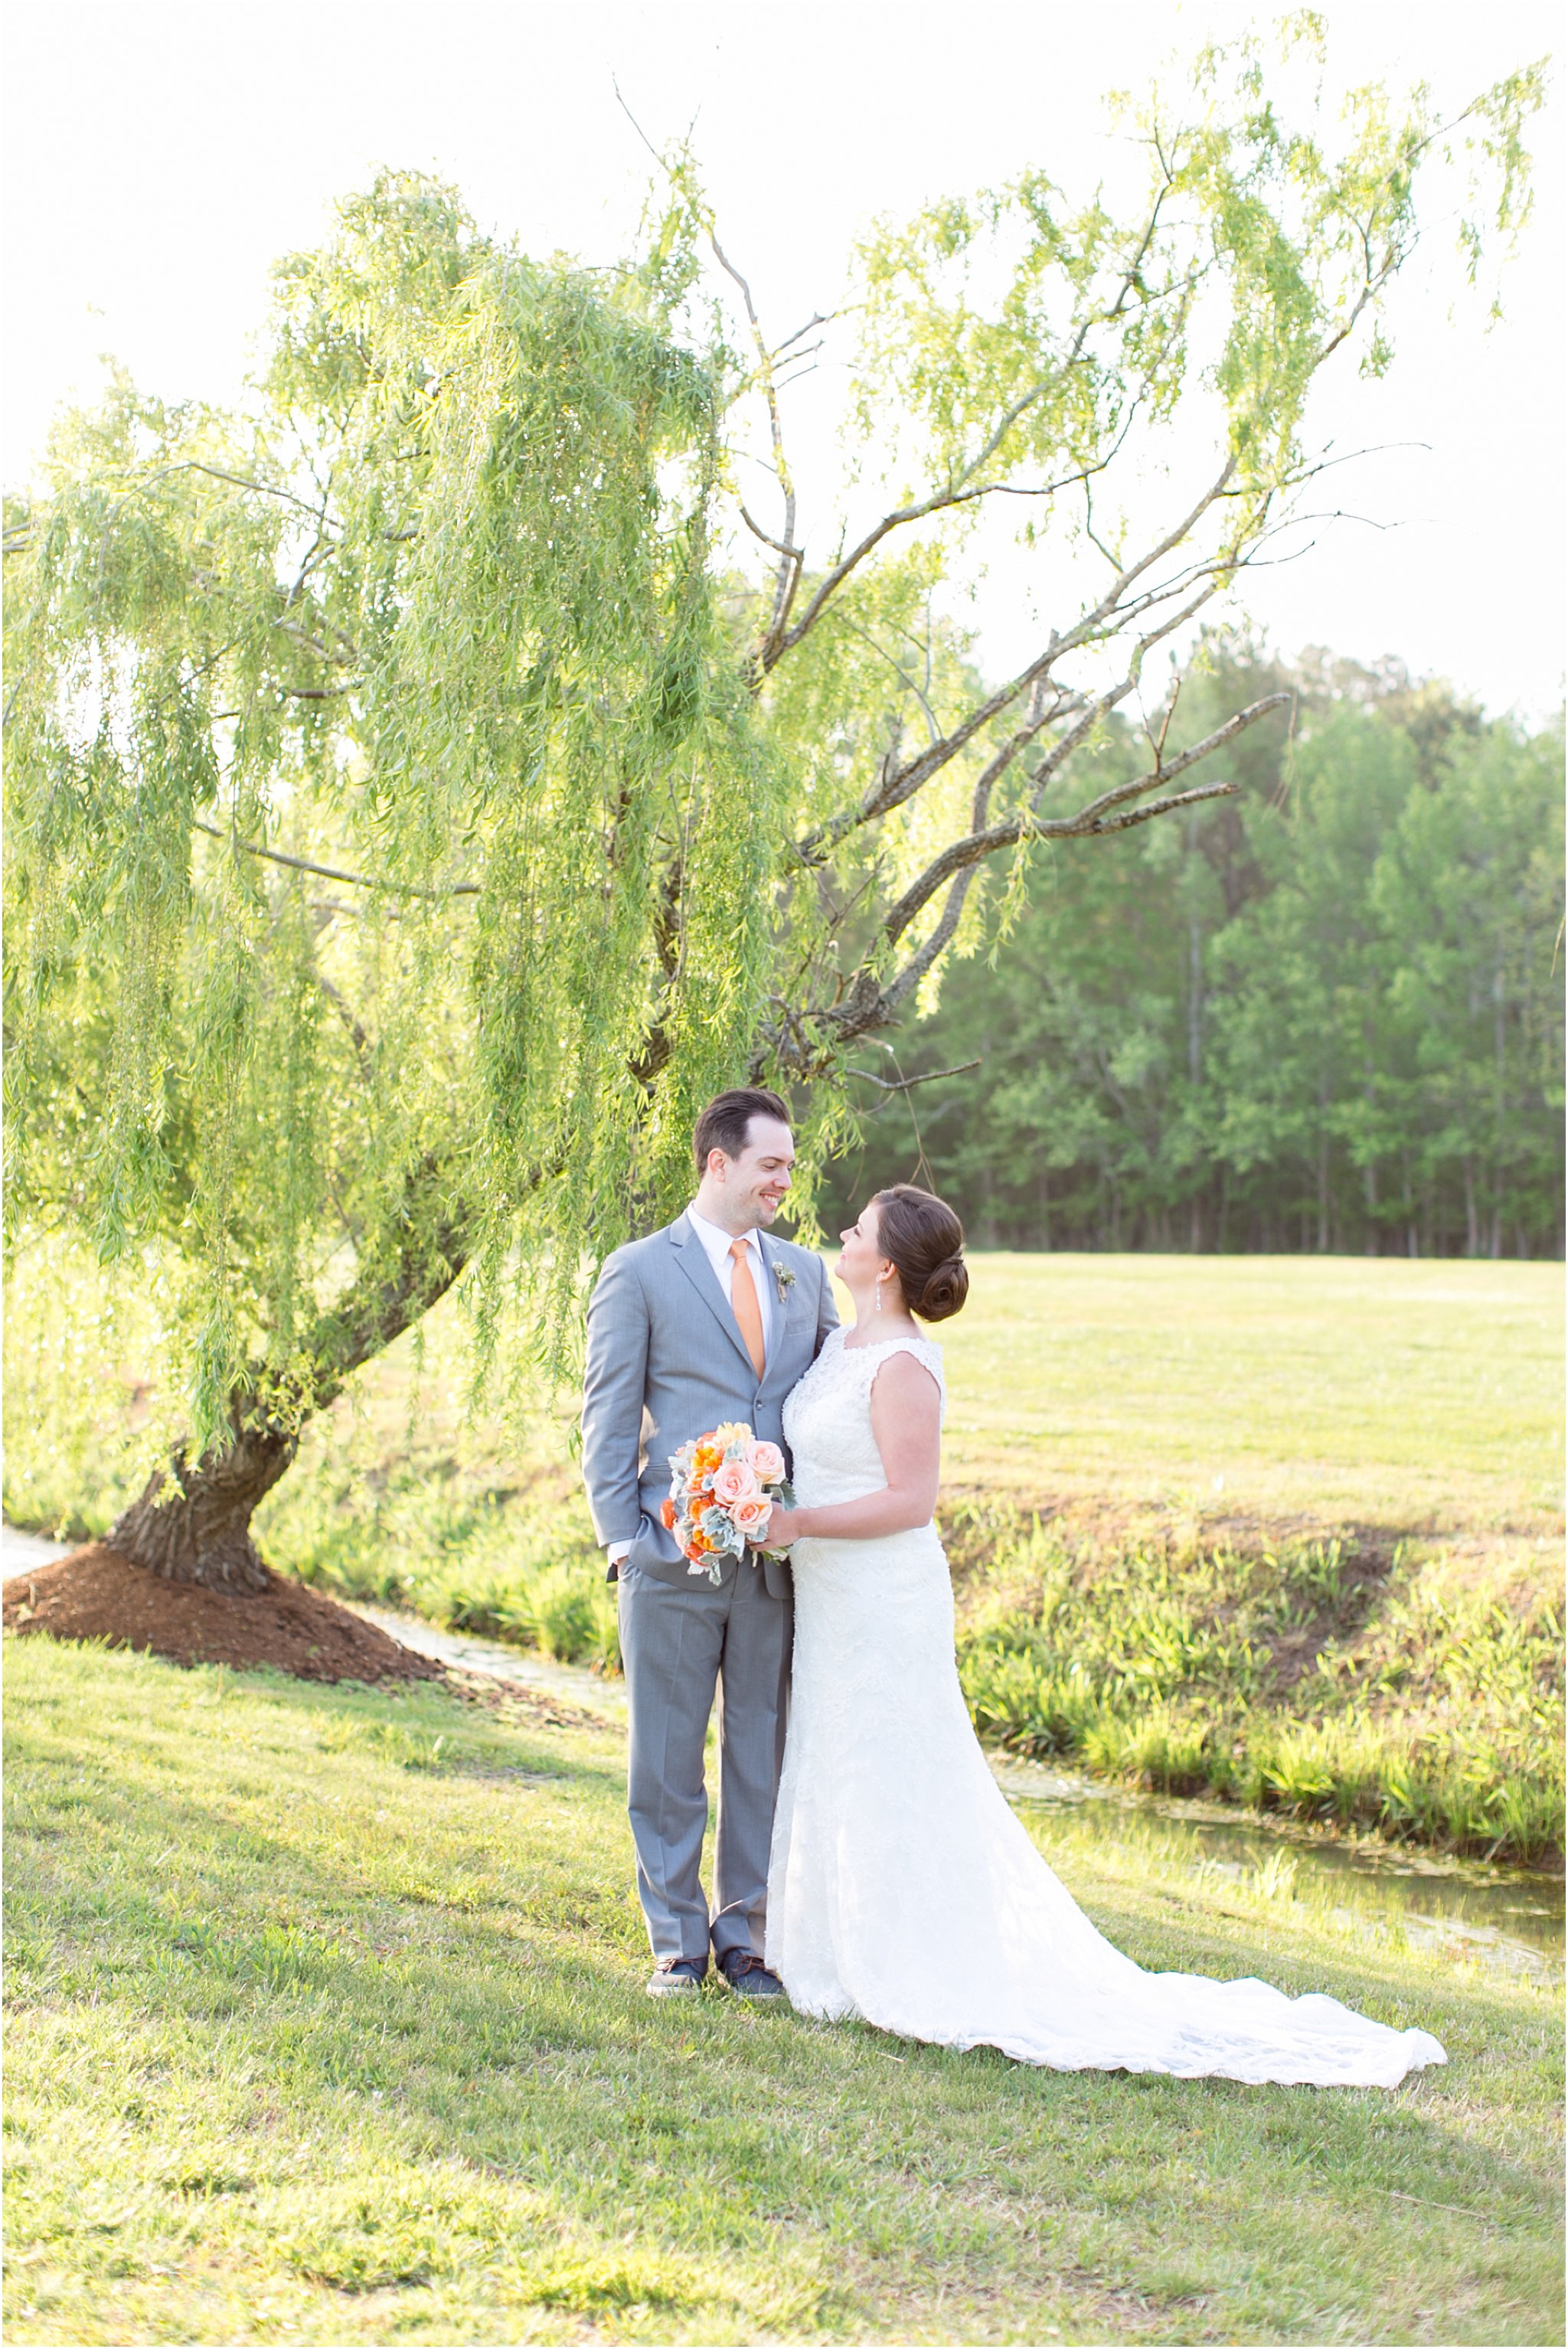 jessica_ryan_photography_holly_ridge_manor_wedding_roost_flowers_jamie_leigh_events_dhalia_edwards_candid_vibrant_wedding_colors_1323